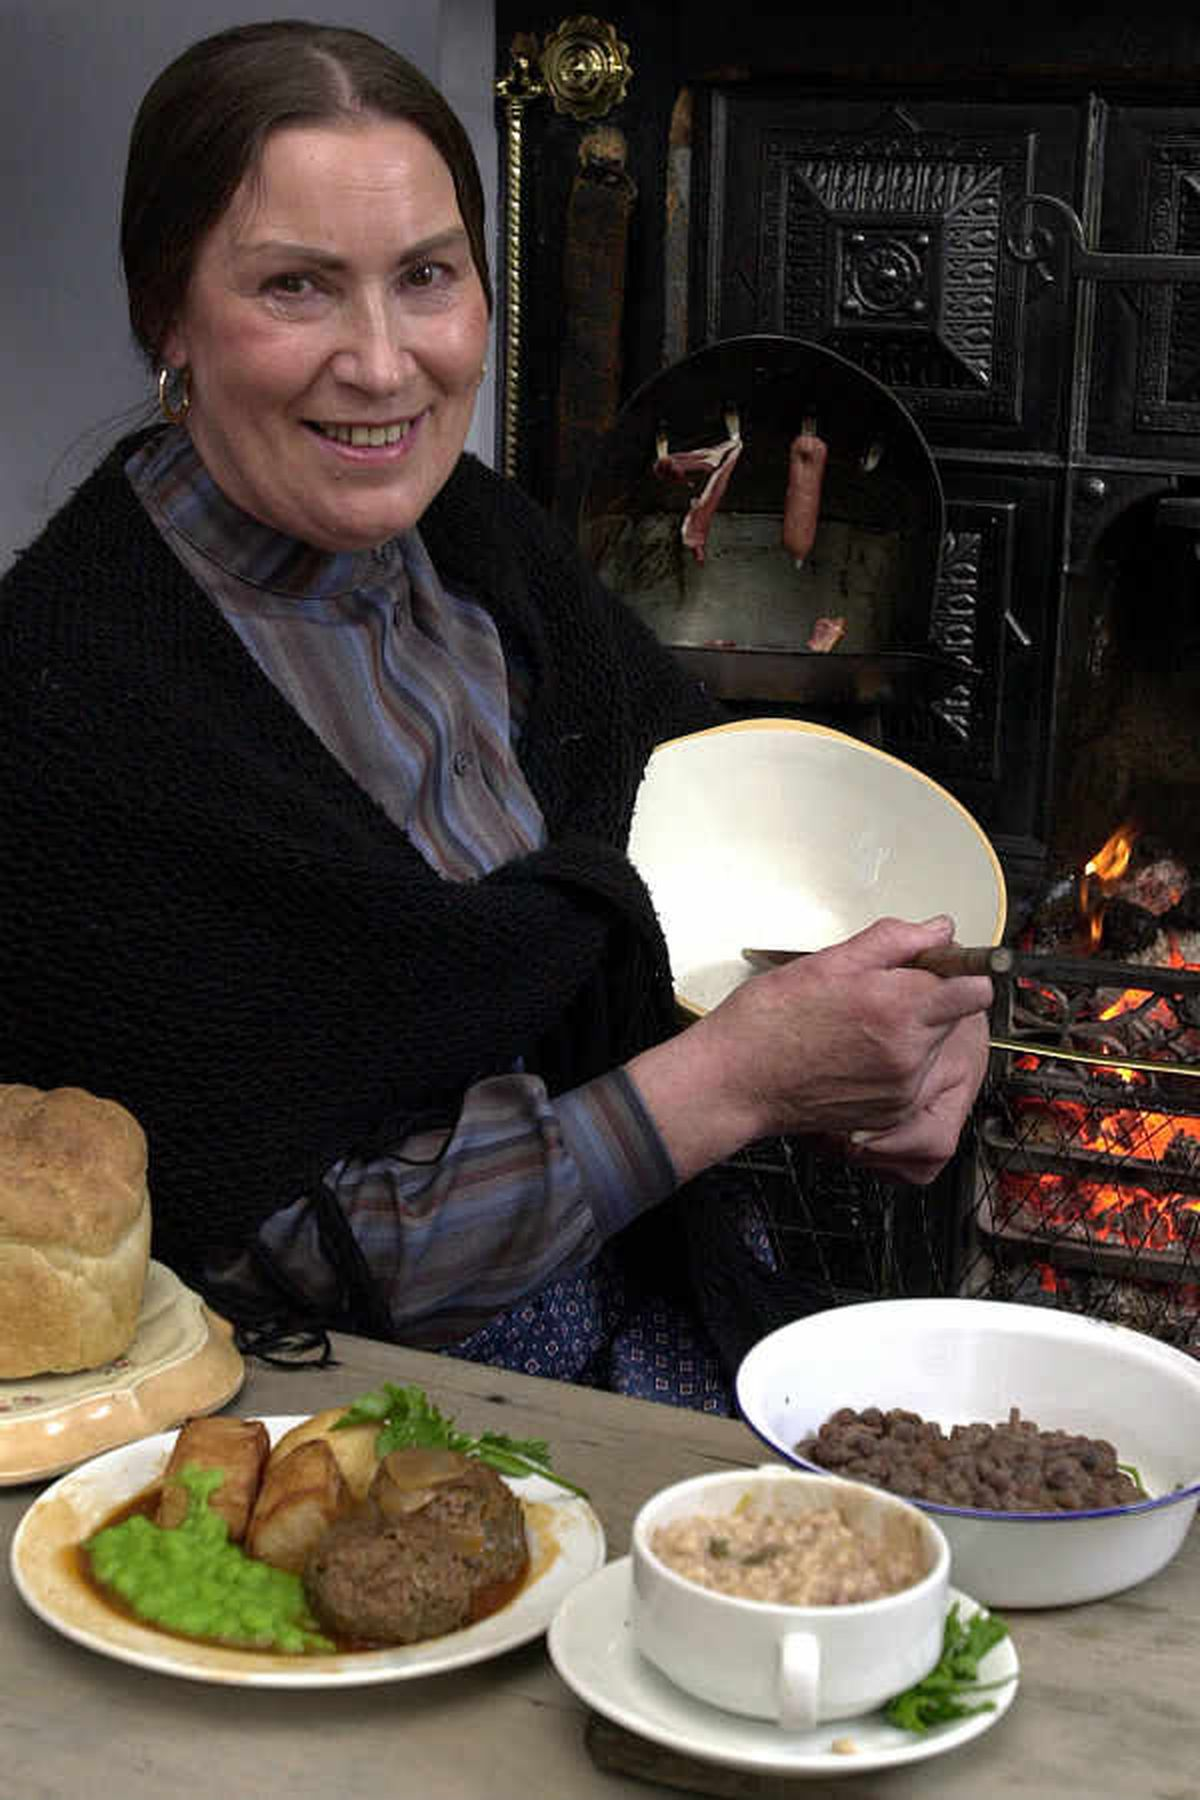 Bessie Hawkes a demonstrator at The Black Country Living Museum with faggots and peas with groates pudding